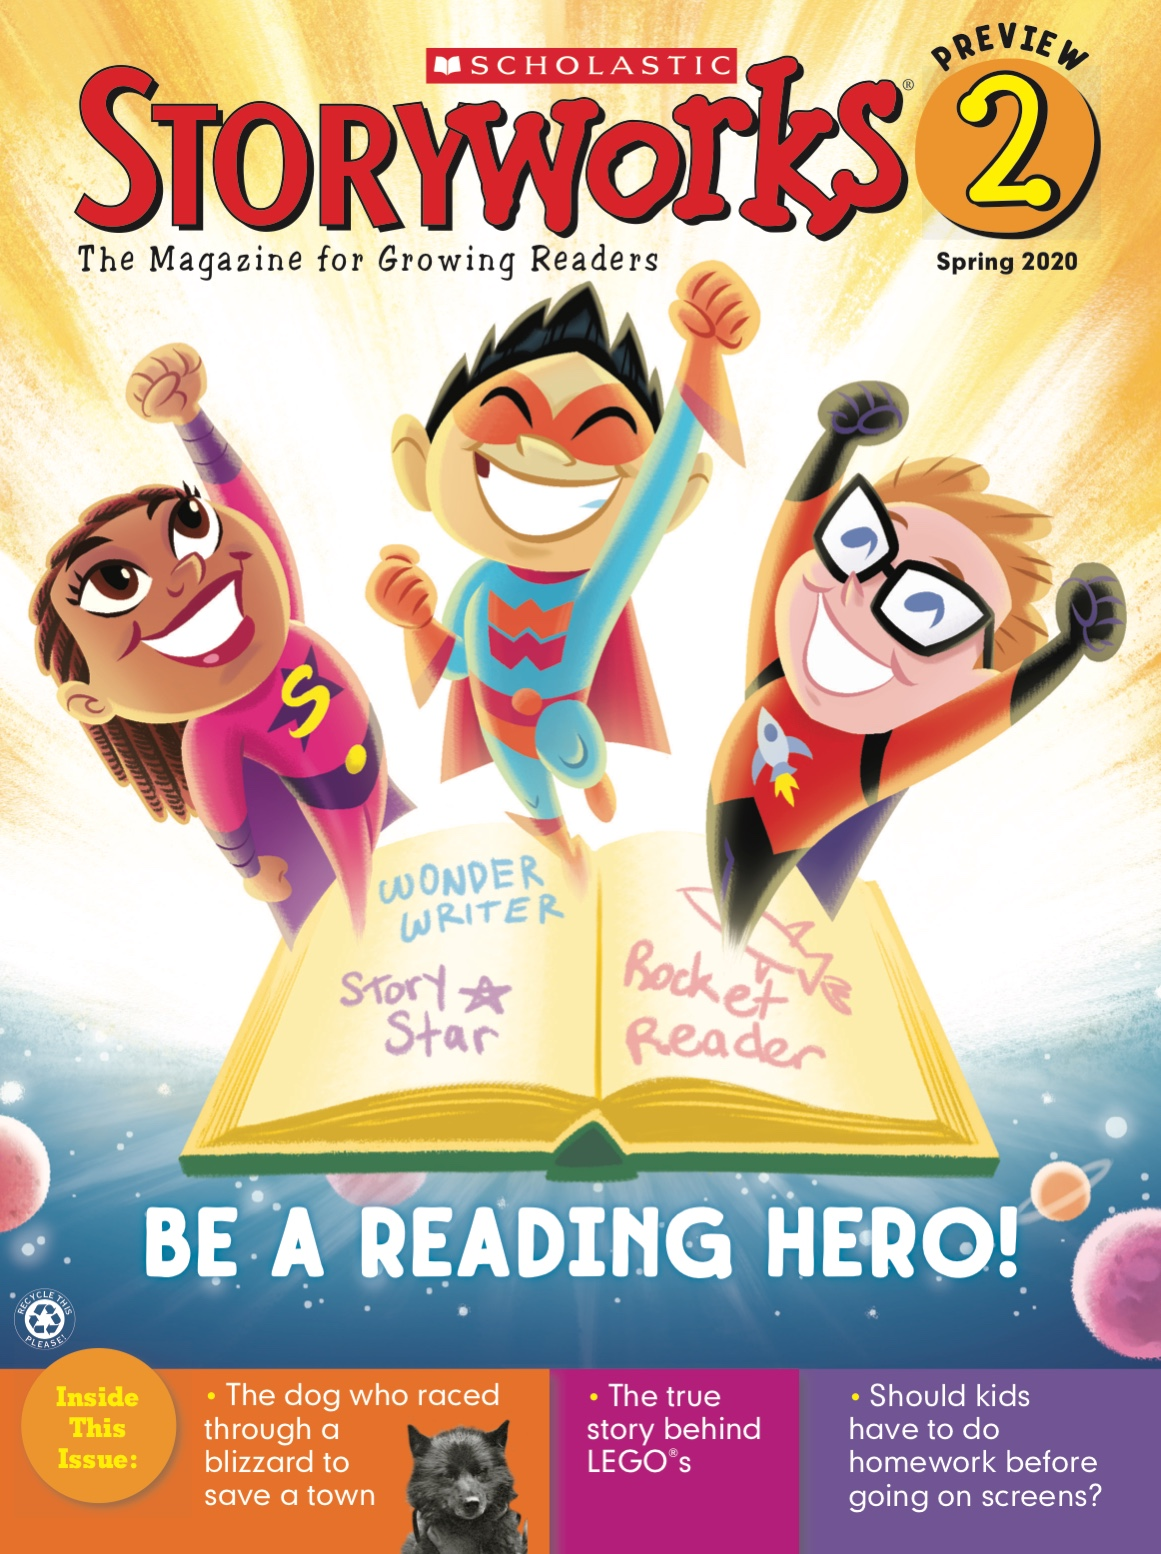 Storyworks 2 magazine cover with 3 reading heroes bursting out of a book